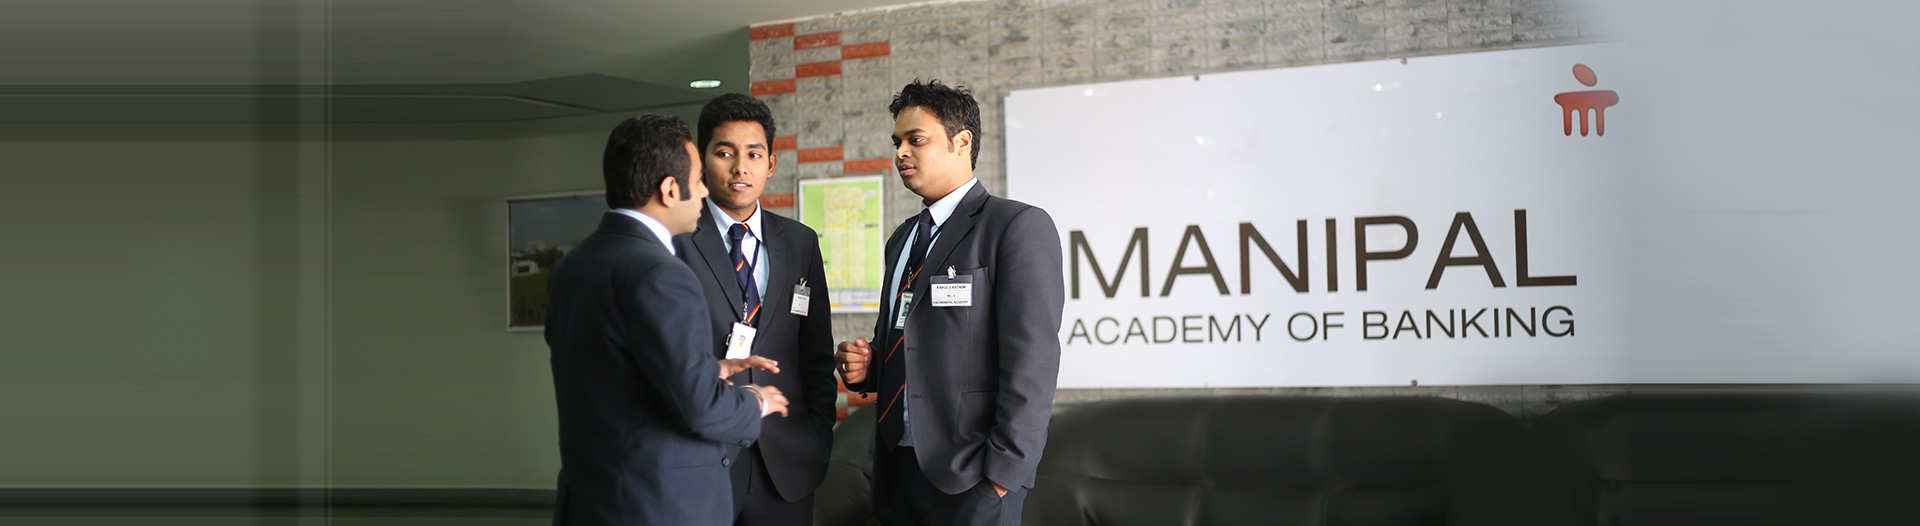 Manipal Academy of Banking